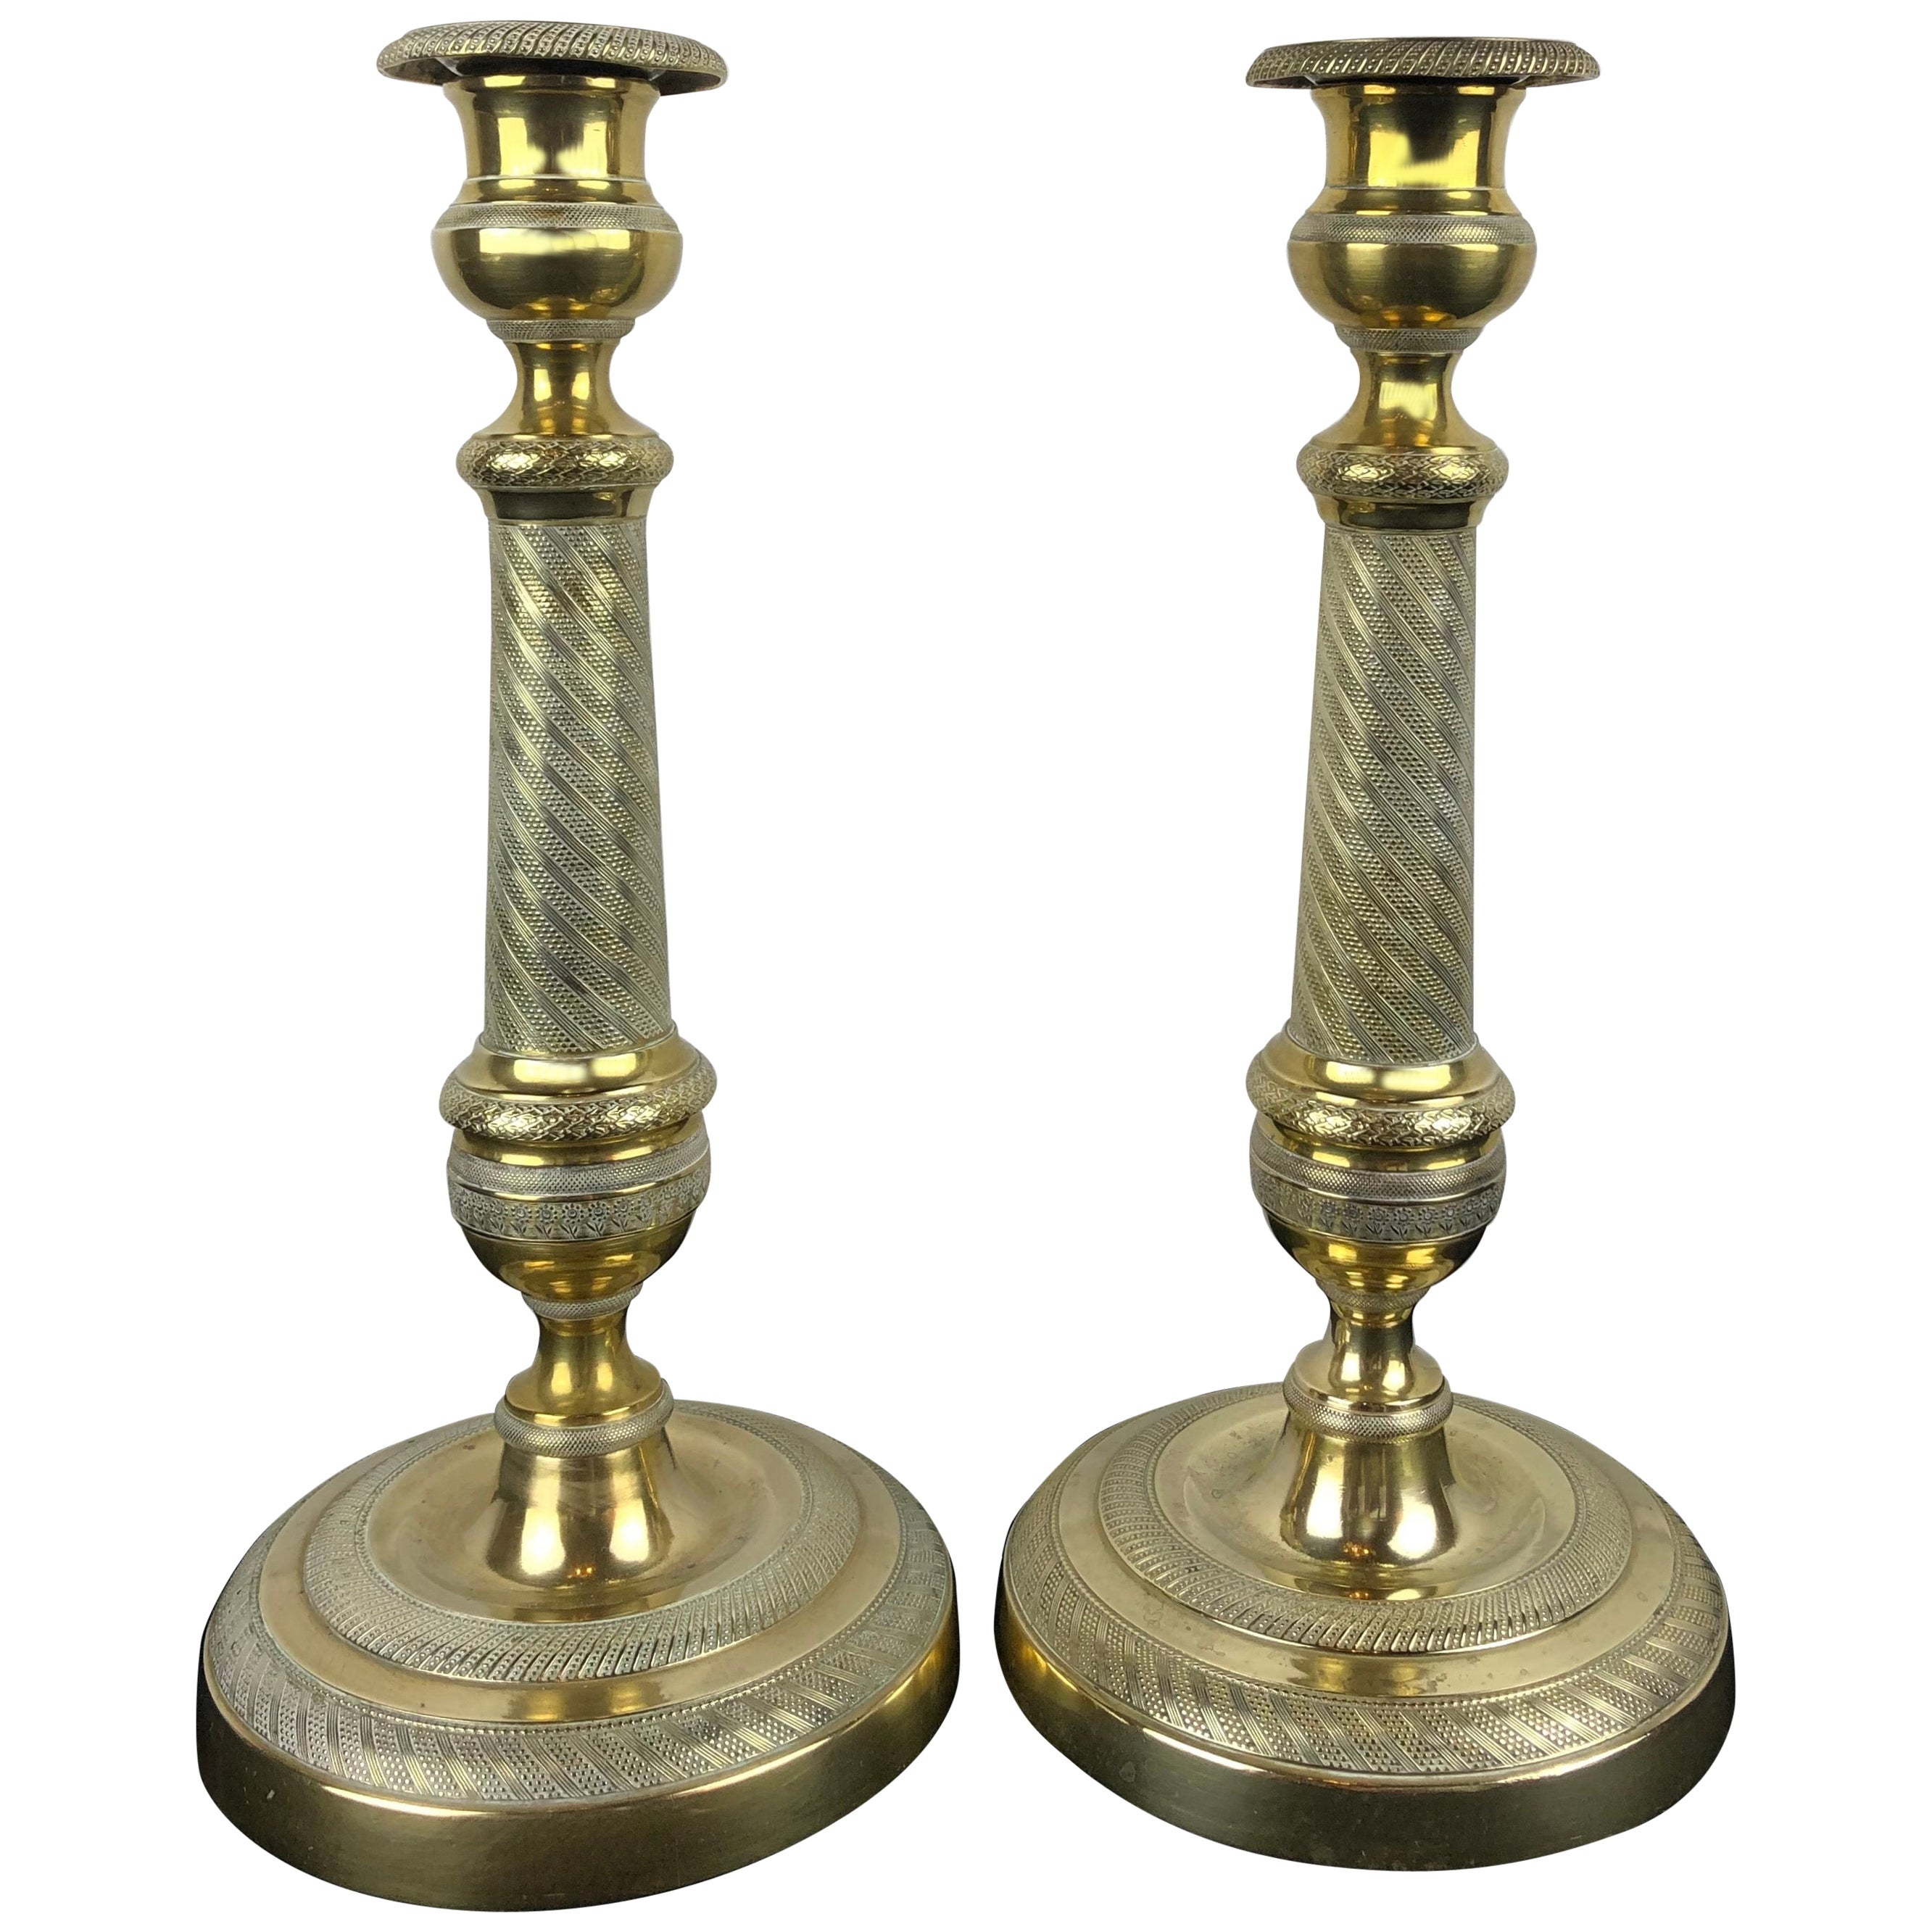 Fine Pair of French Empire Gilt Bronze Candlesticks, Early 19th Century